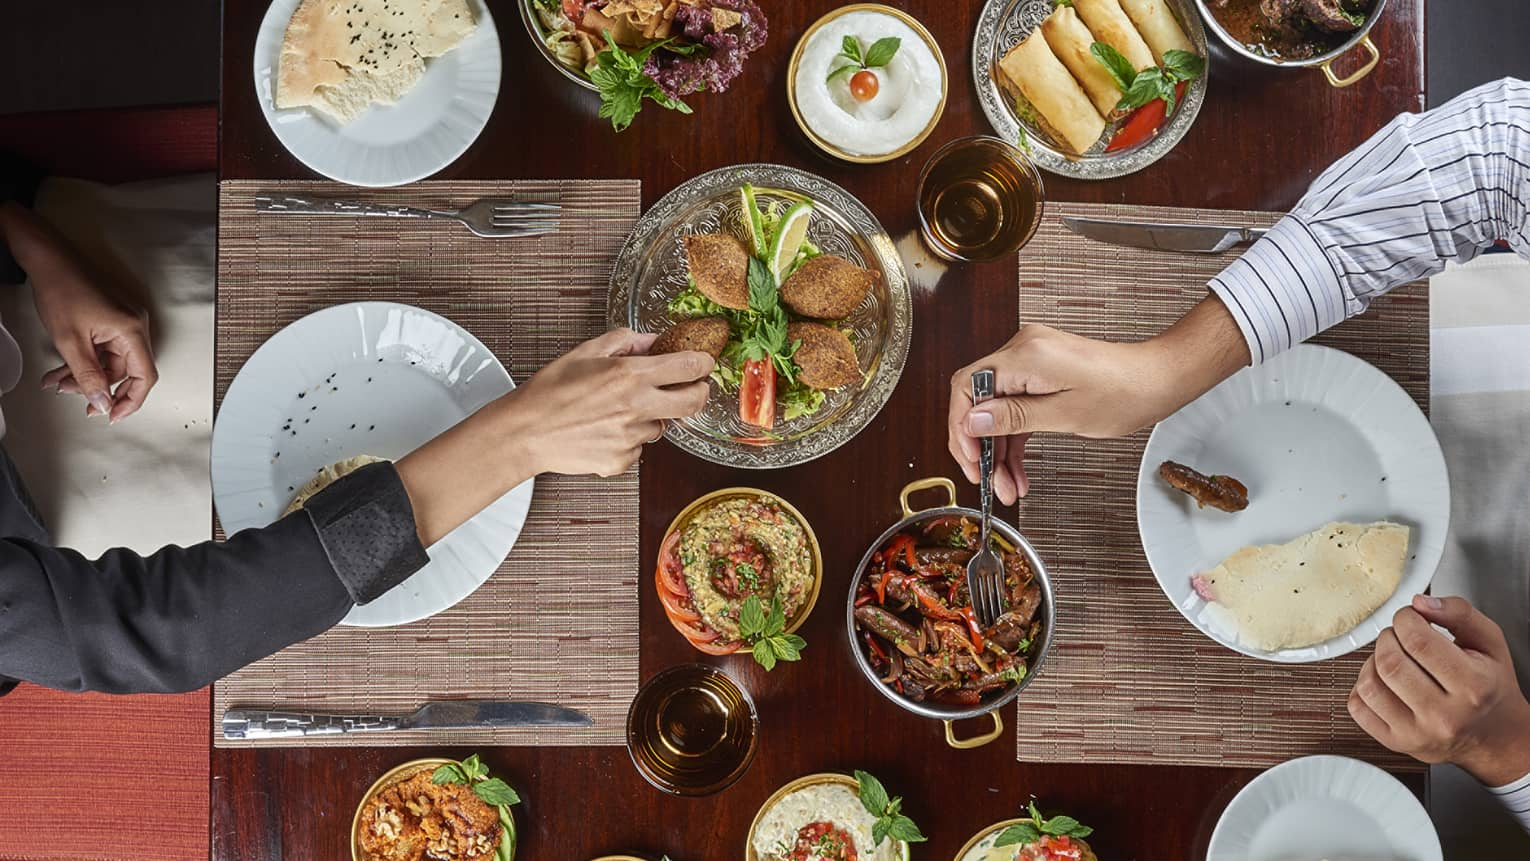 Aerial view of two people at dining table sharing hot and cold meze plates, Syrian and Lebanese meals